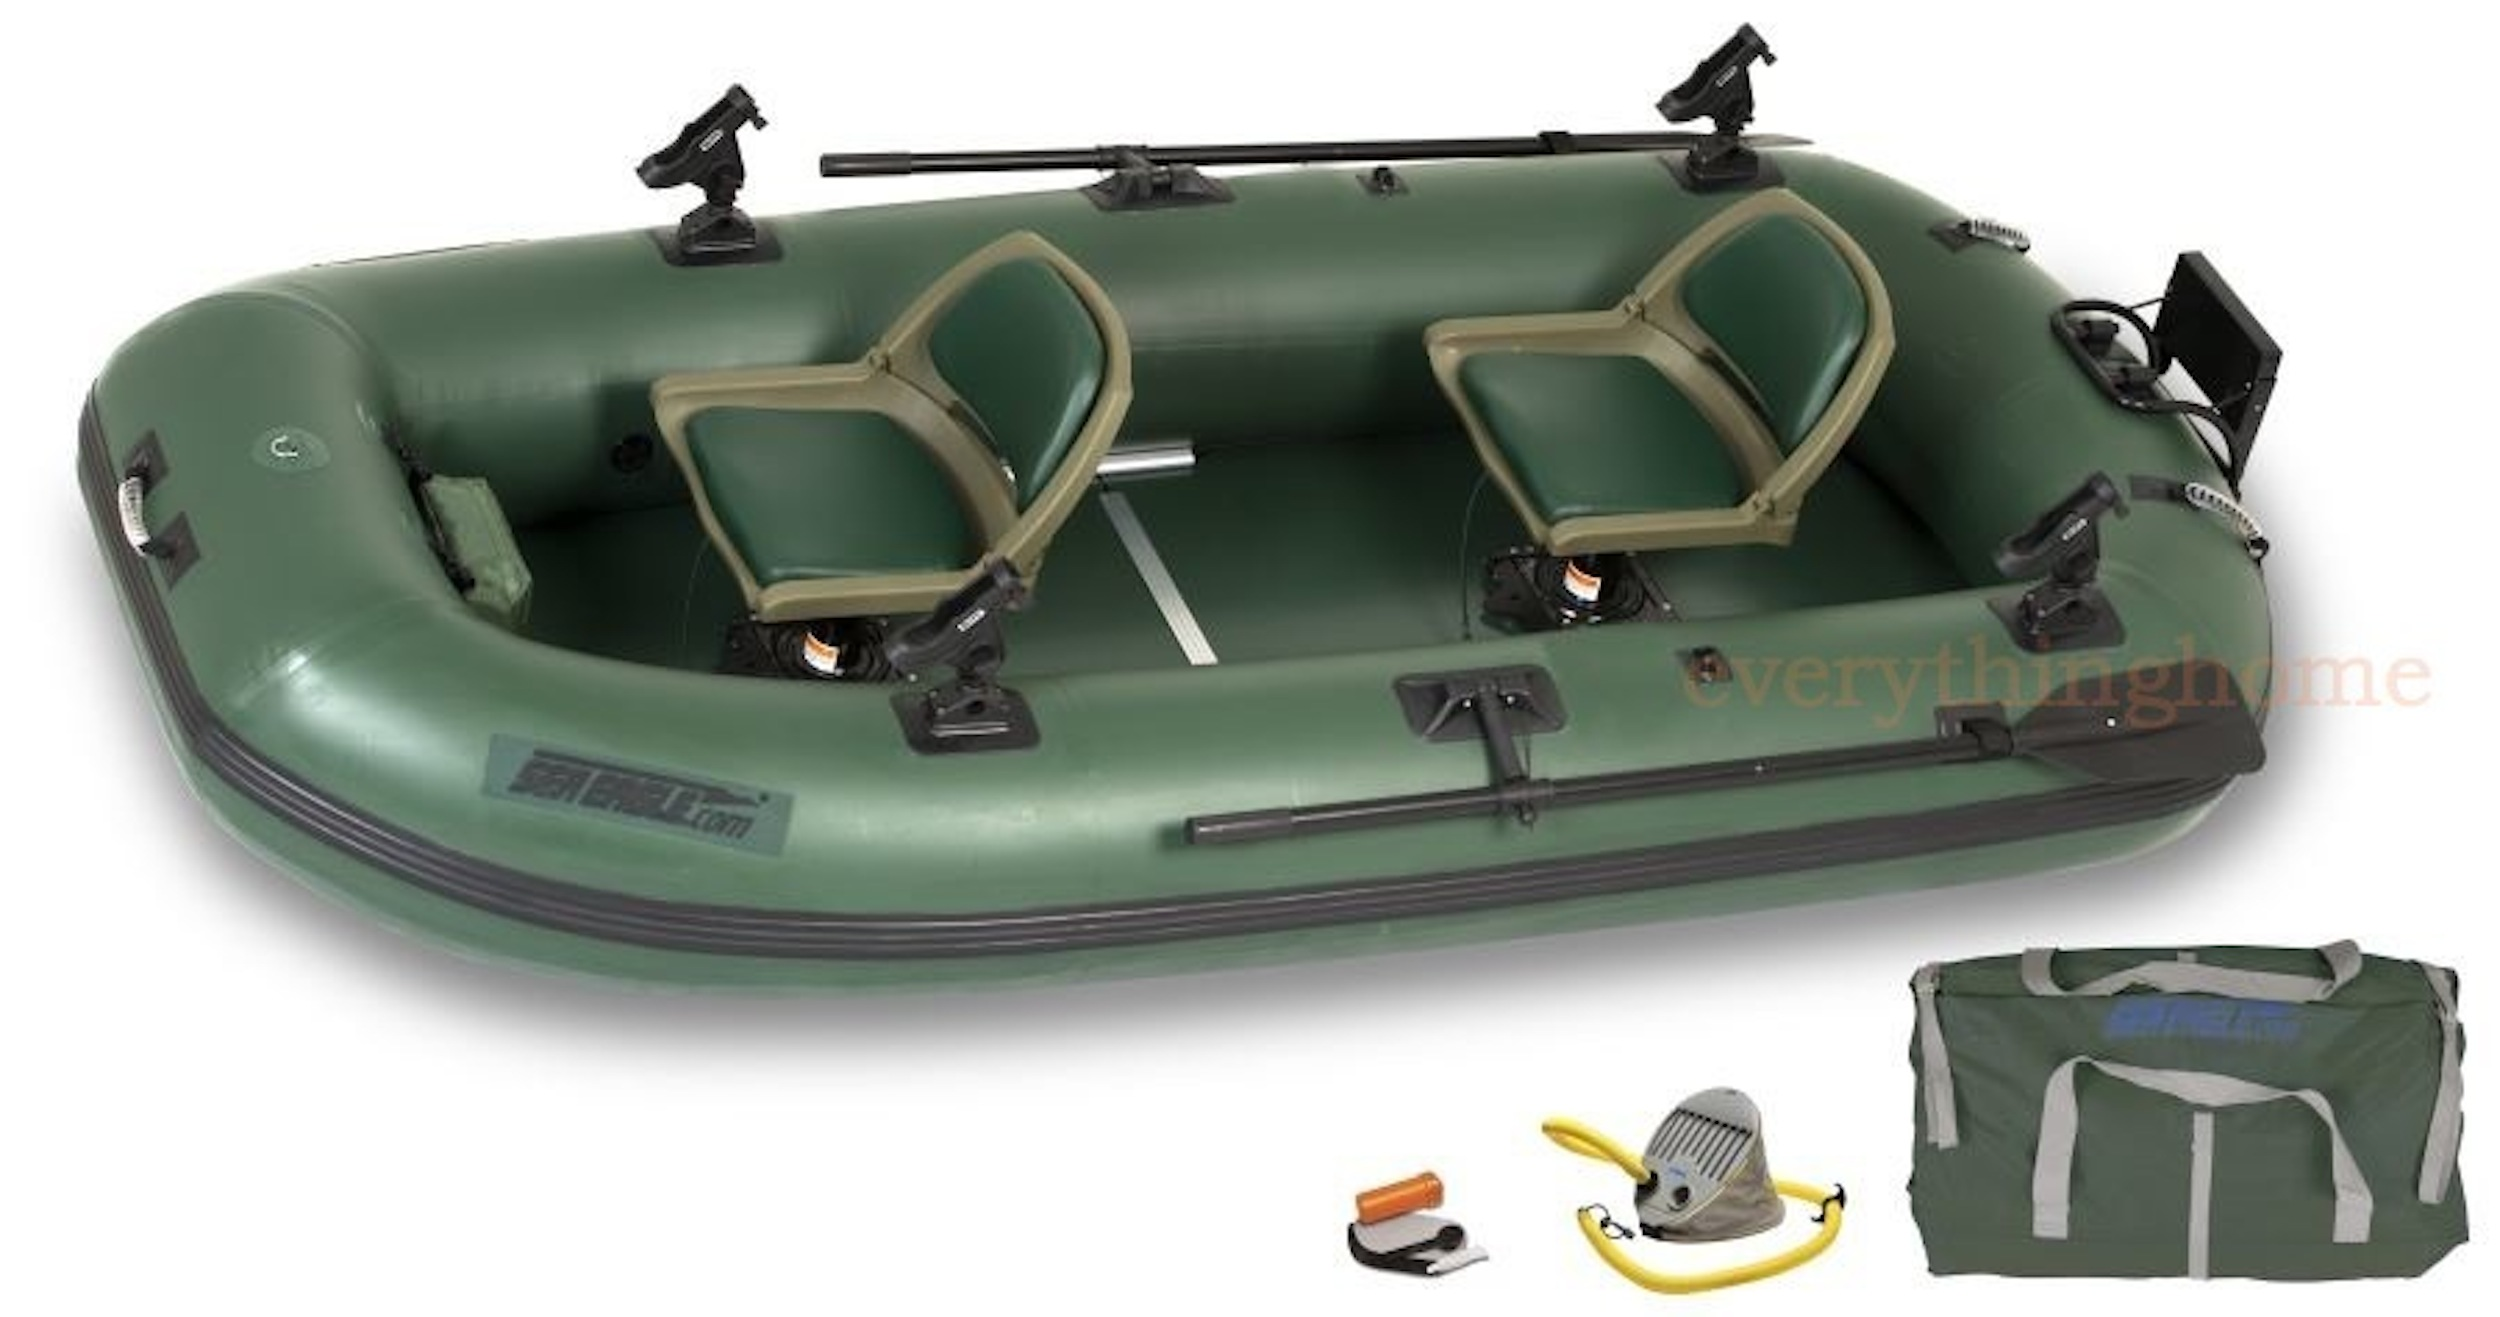 Sea eagle sts10 stealth stalker inflatable fishing boat for Small boat motor repair